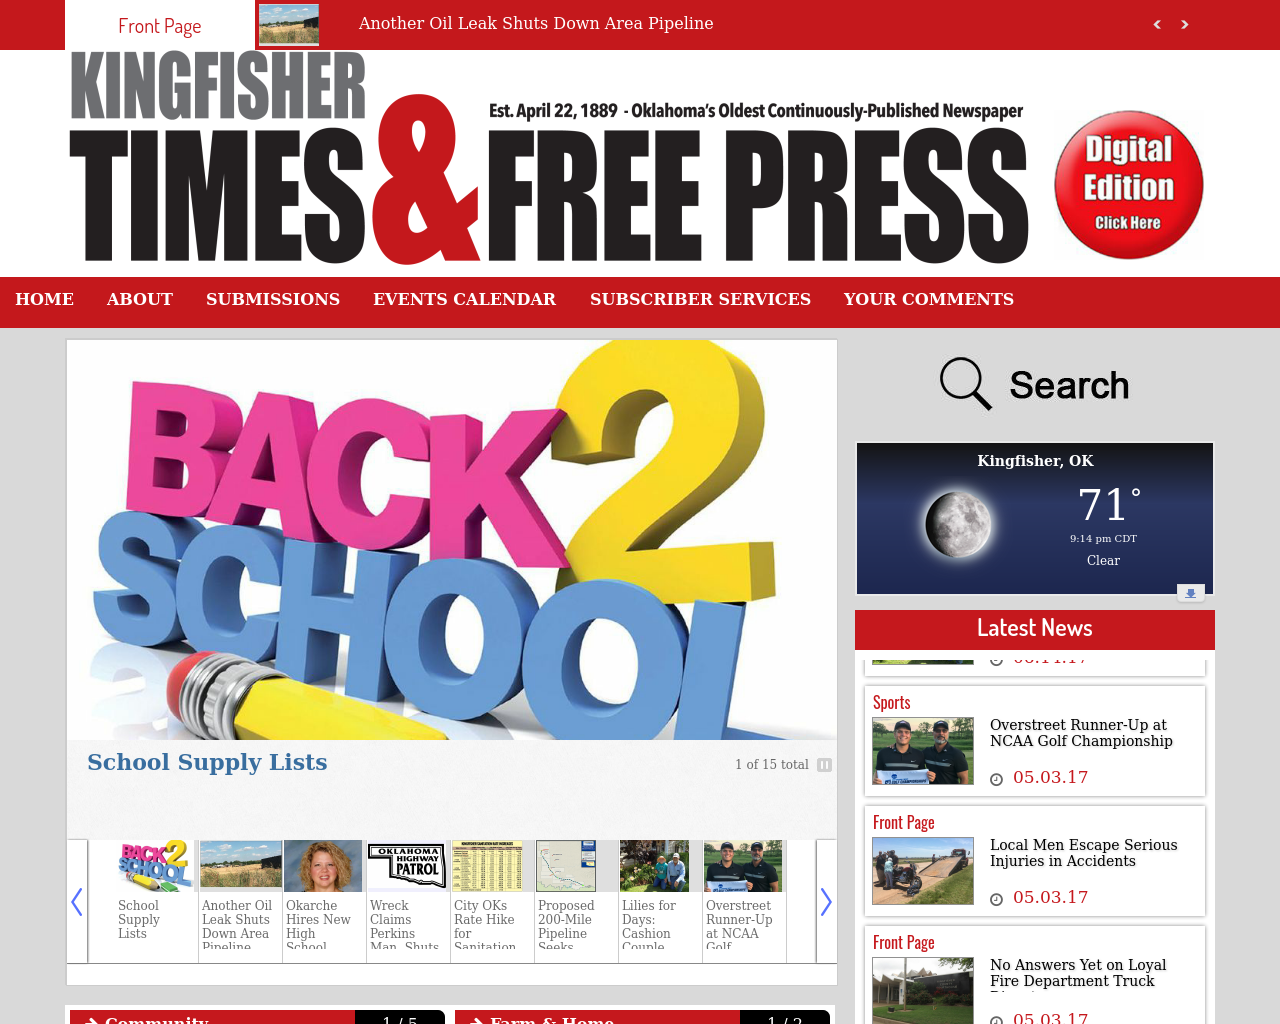 The-Kingfisher-Times-&-Free-Press-Online-Advertising-Reviews-Pricing